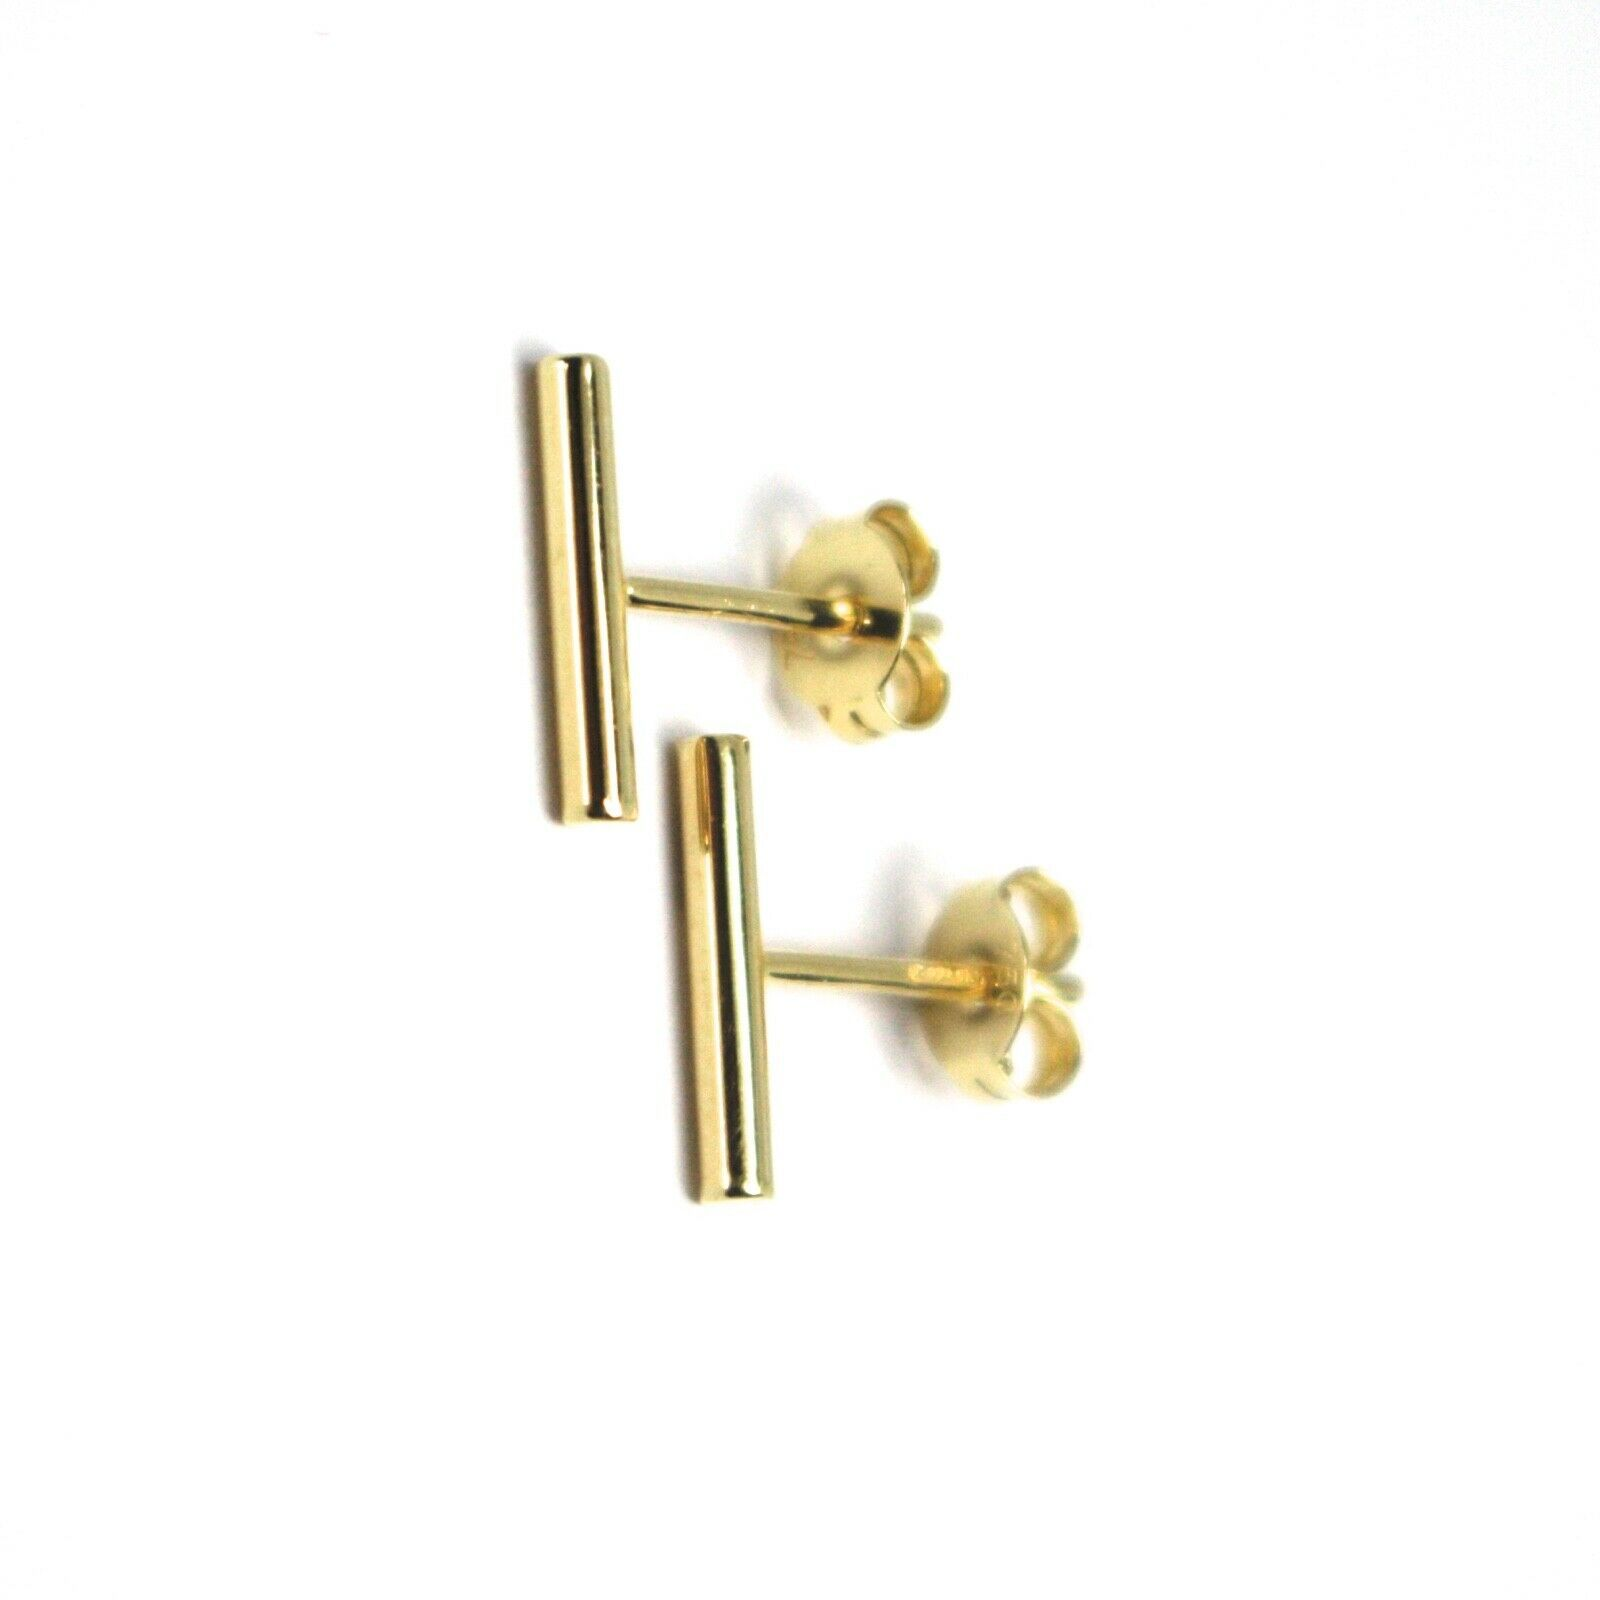 """18K YELLOW GOLD EARRINGS MINI POLE, ROUNDED BAR 10mm, 0.4"""", MADE IN ITALY"""